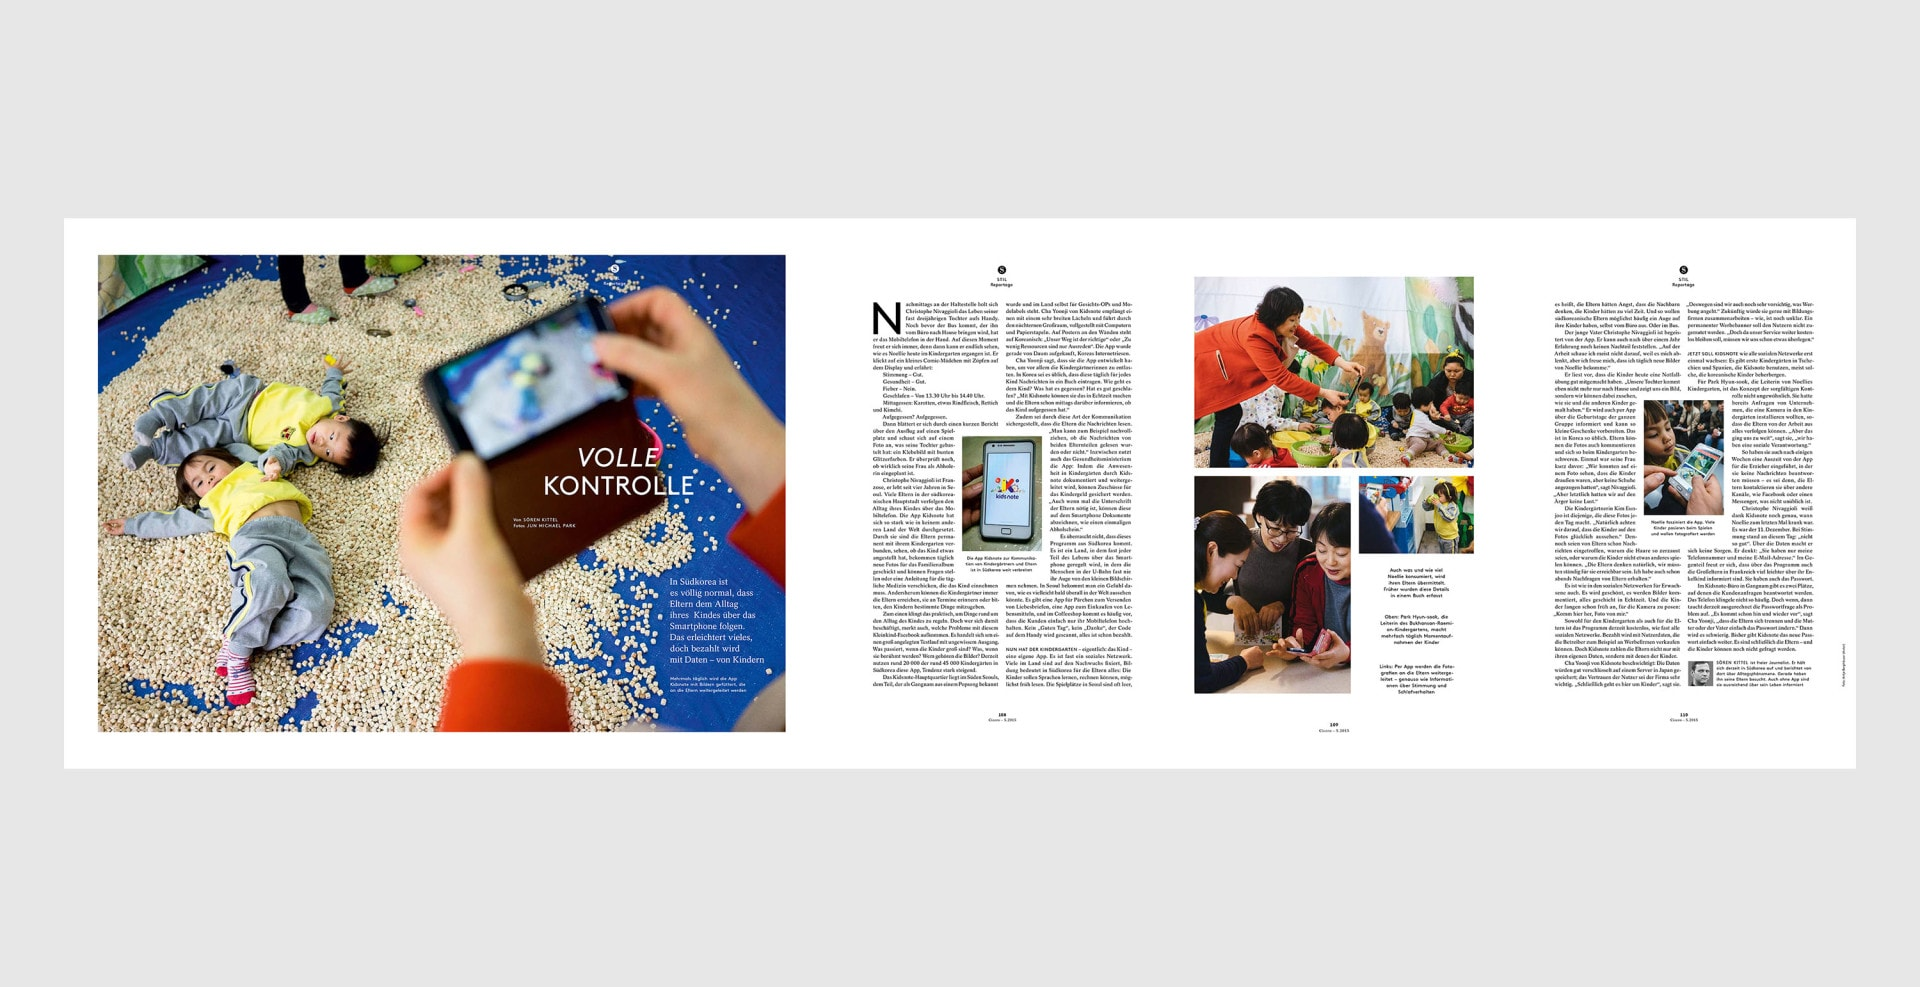 Kidsnote, May 2015, Cicero Magazine in Germany